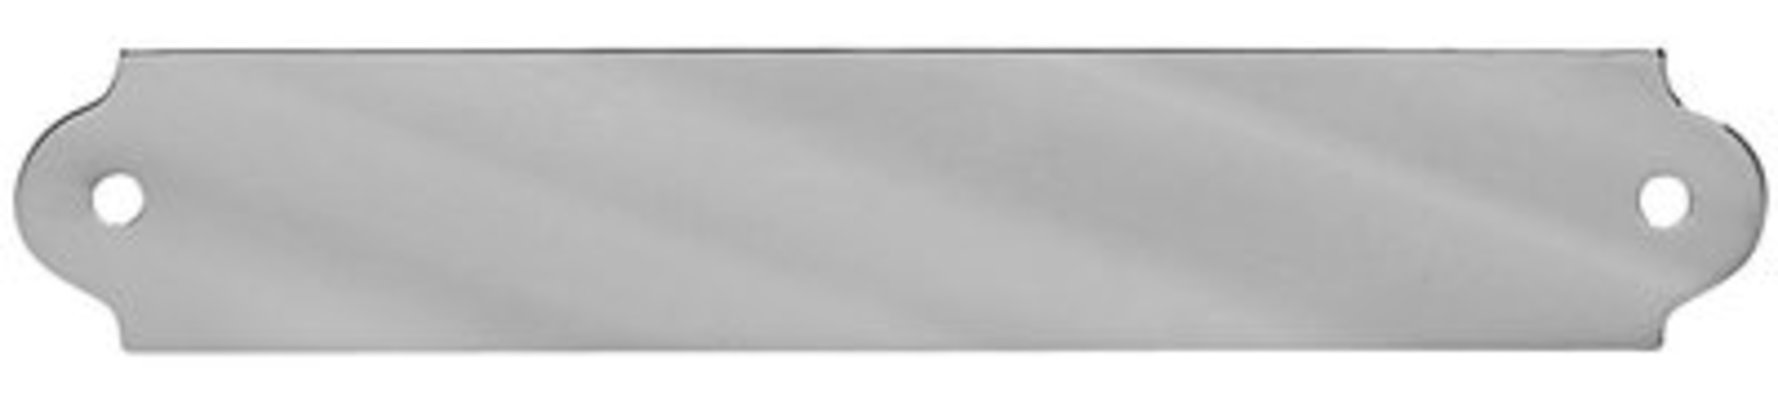 "4-1/4"" x 3/4"" Chrome English Style Name Plate"